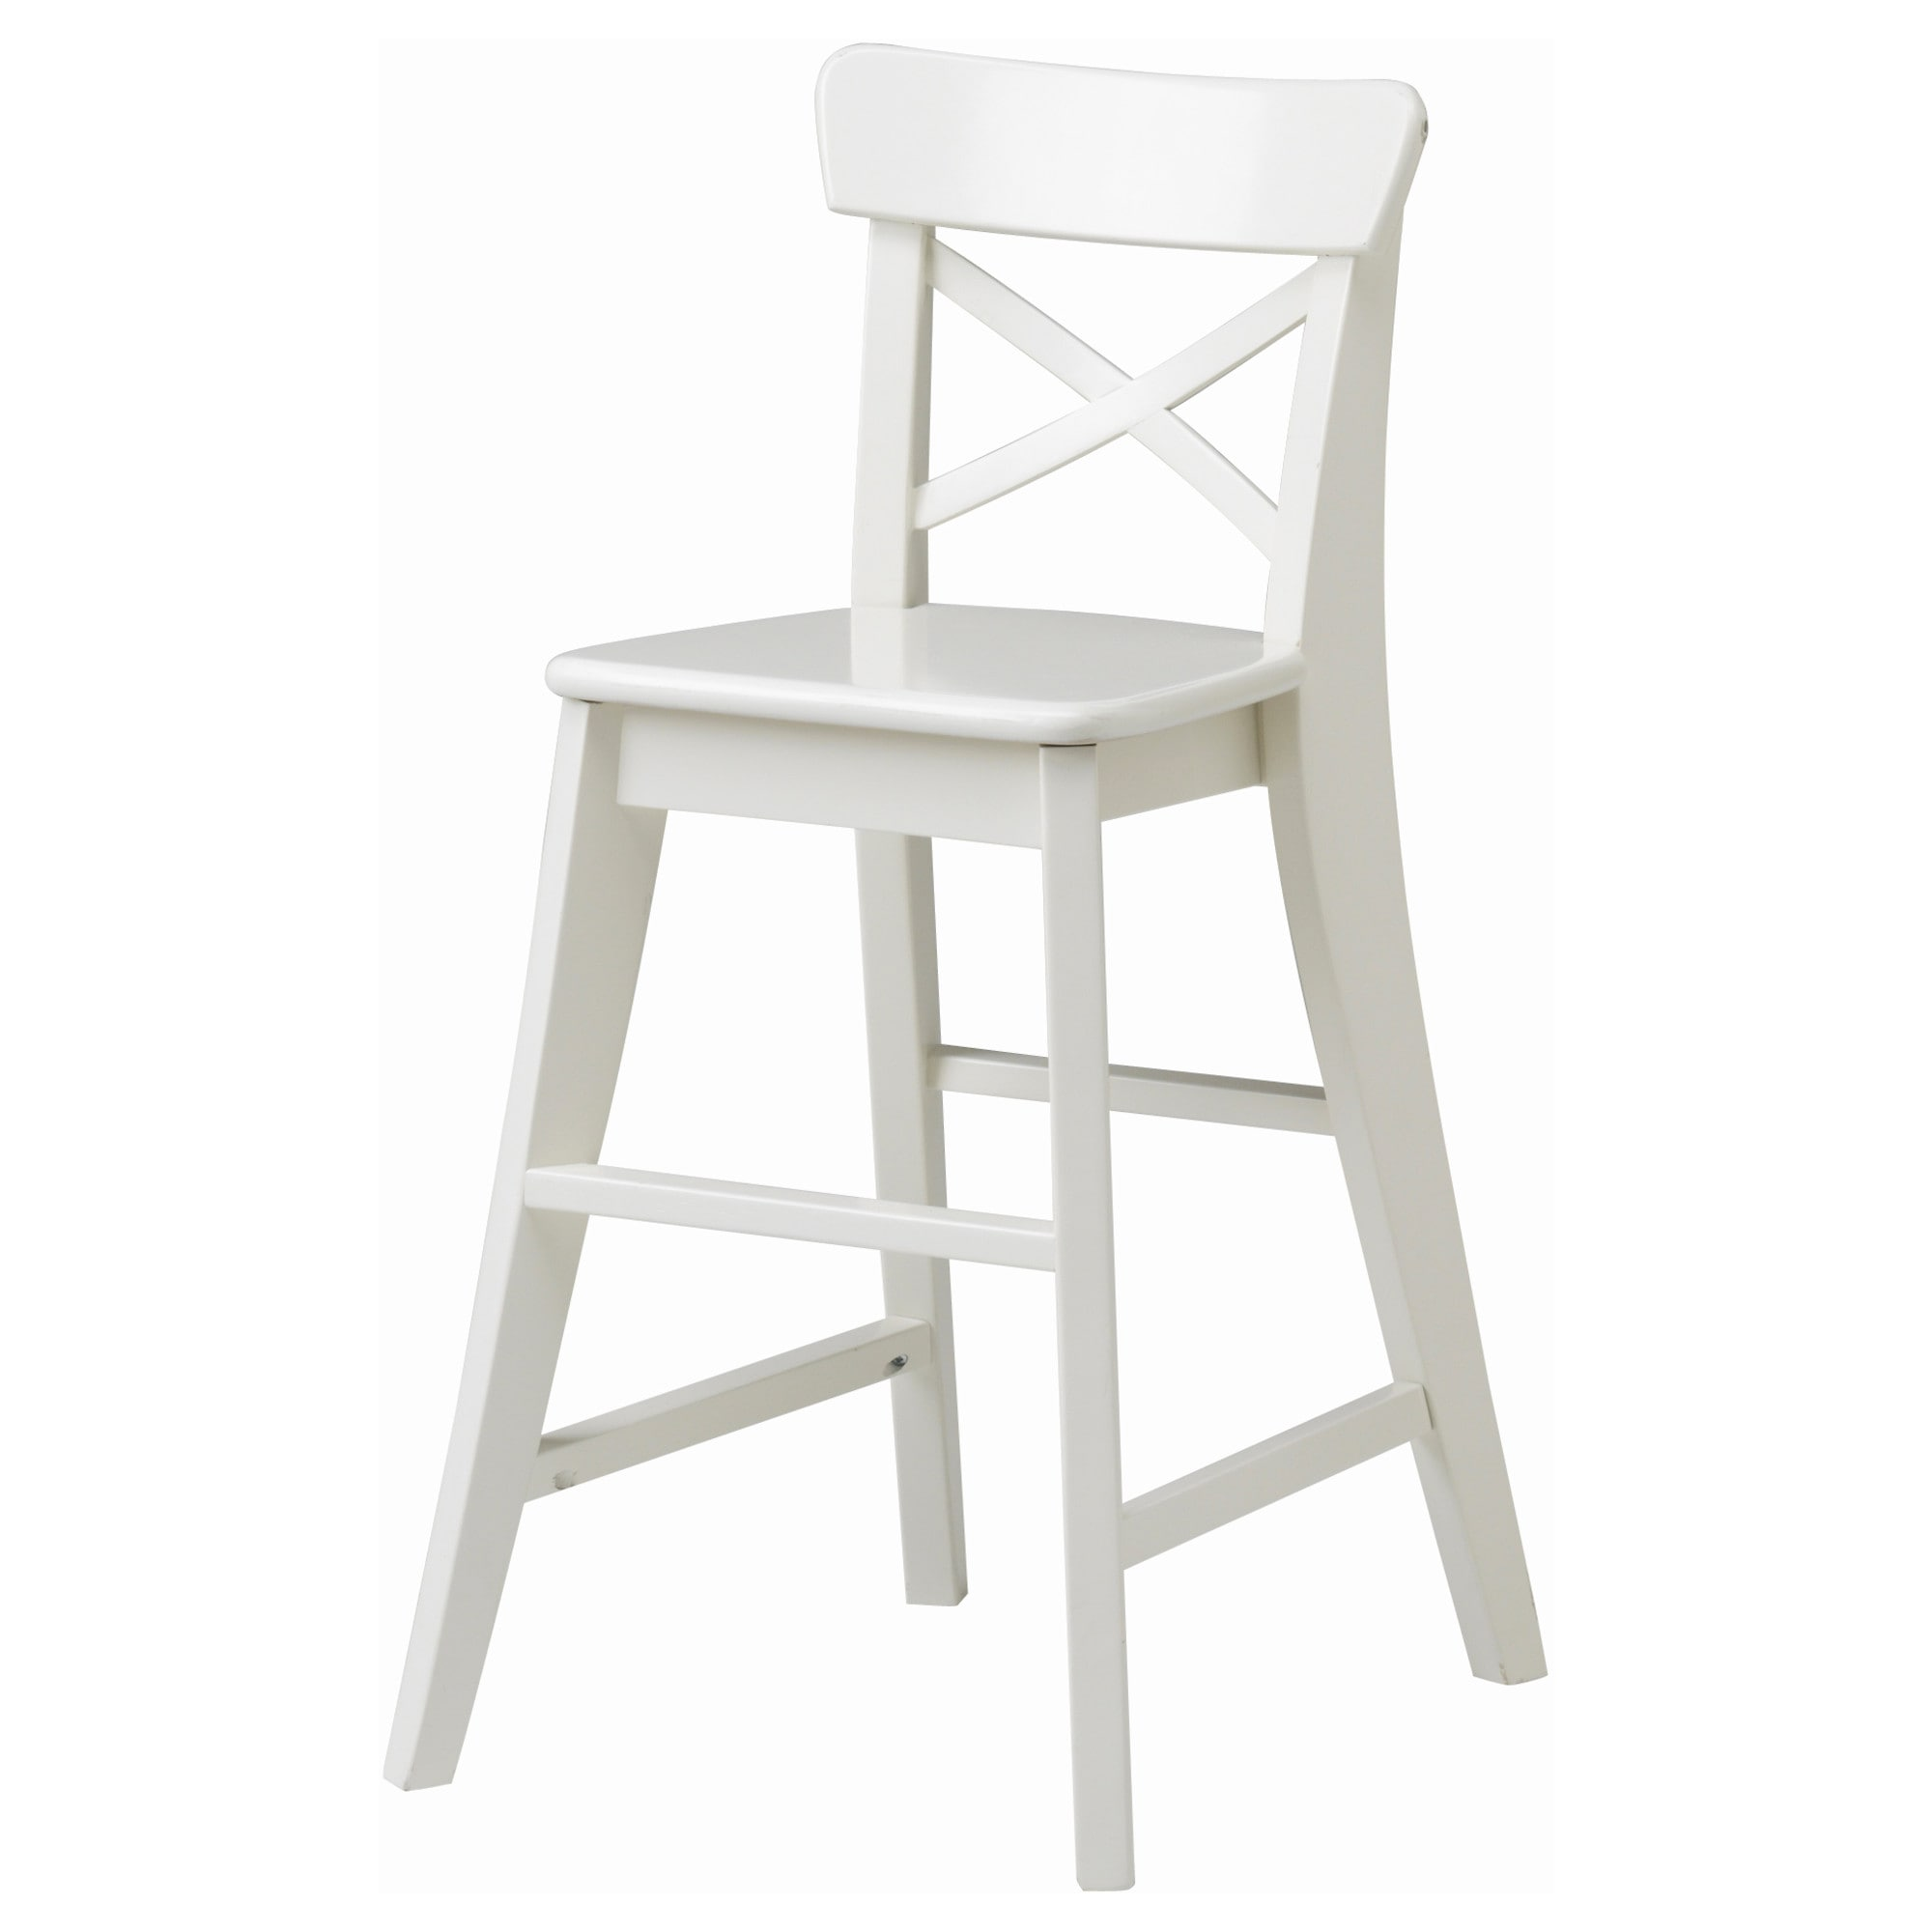 kids' chairs  ikea - ingolf junior chair white width    depth